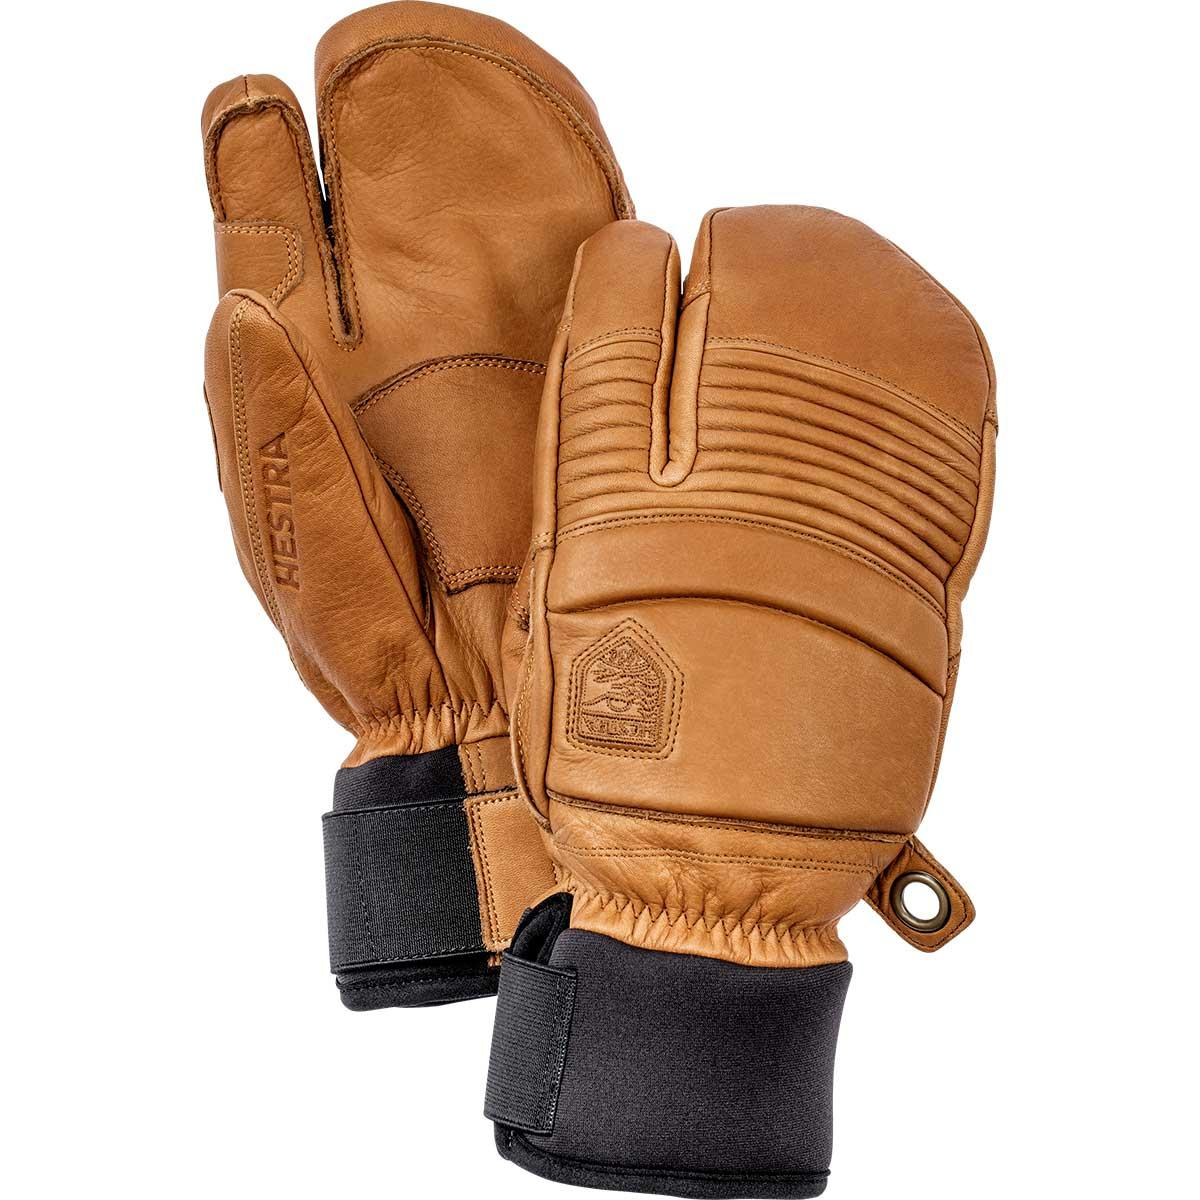 Hestra Leather Fall Line 3-Finger gloves in cork